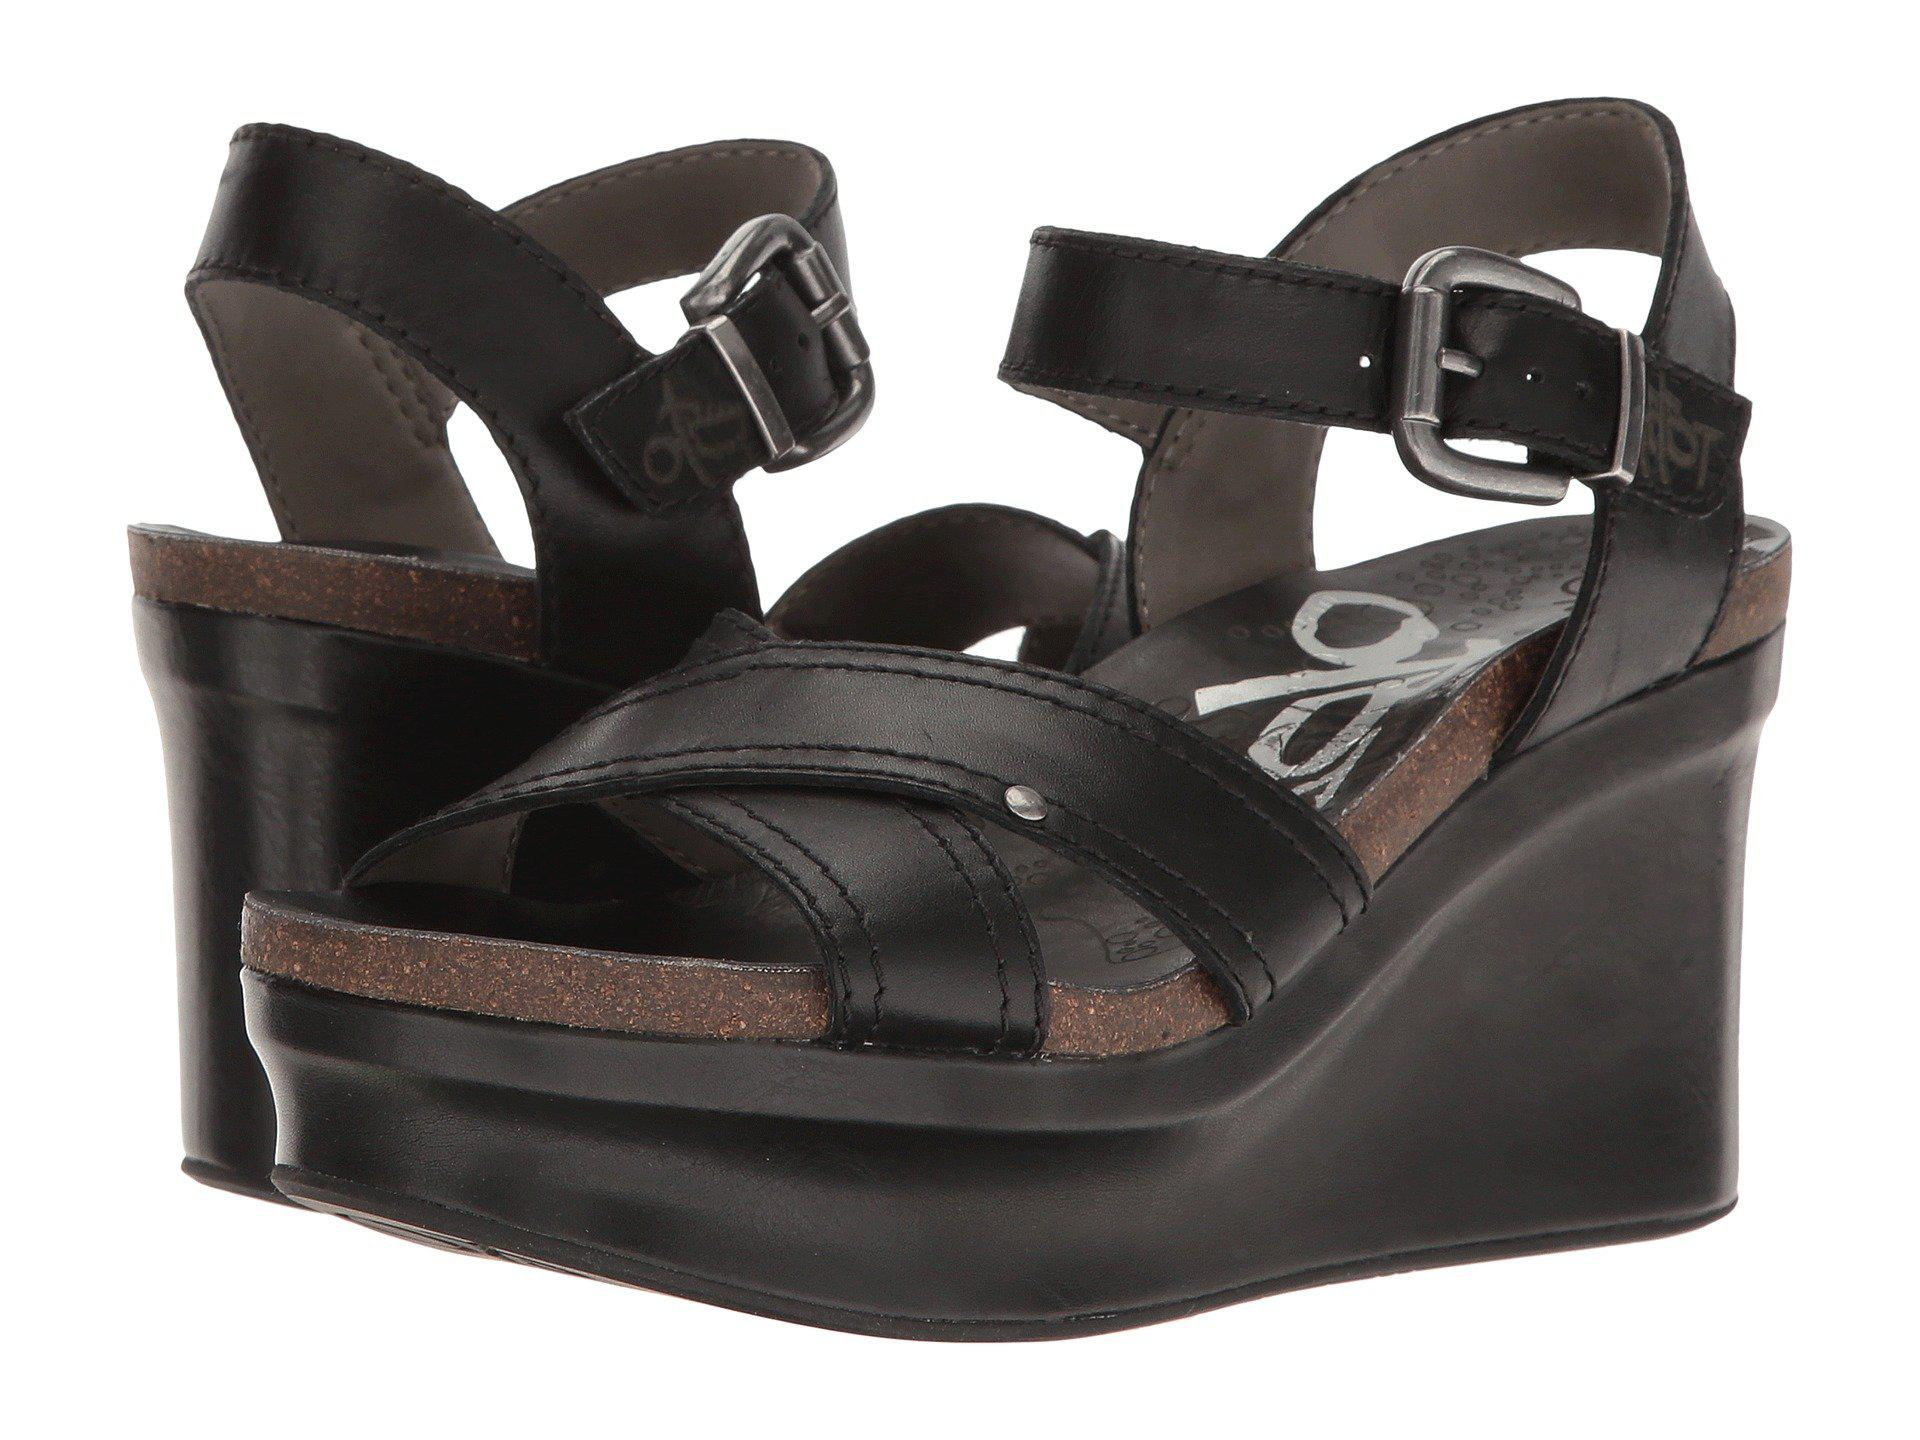 8f9f7606584 Lyst - Otbt Bee Cave (black) Women s Wedge Shoes in Black